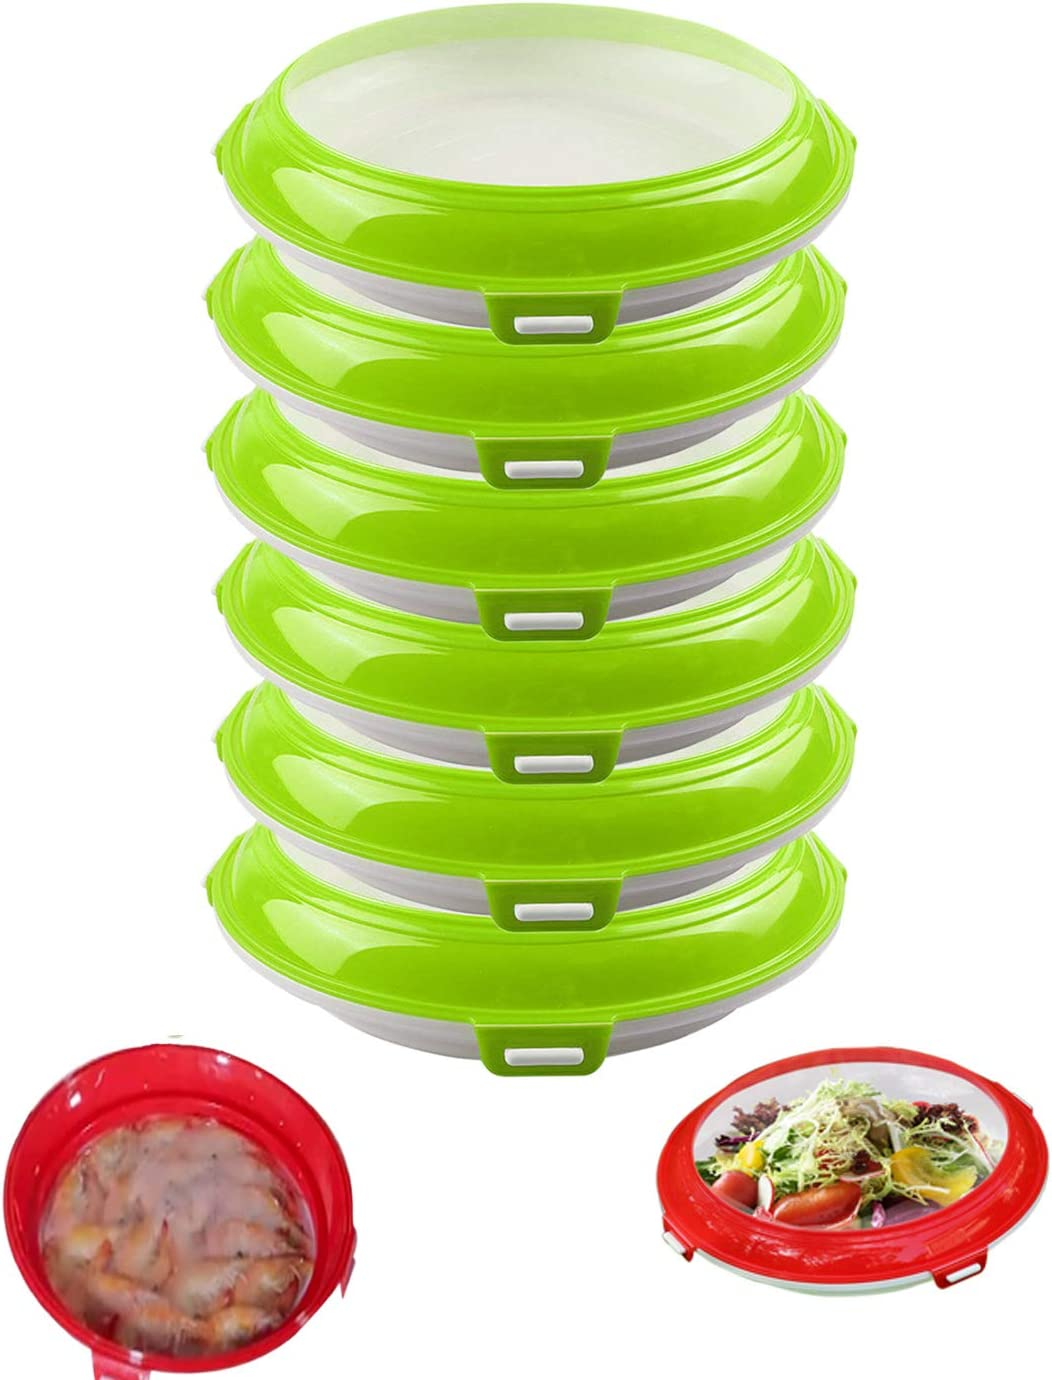 HangNiFang Food Preservation Tray Stackable Food Tray Food Storage Containers Reusable Durable Odor Free Keeping Food Fresh Suitable for Vegetables Fruits Meat Fish